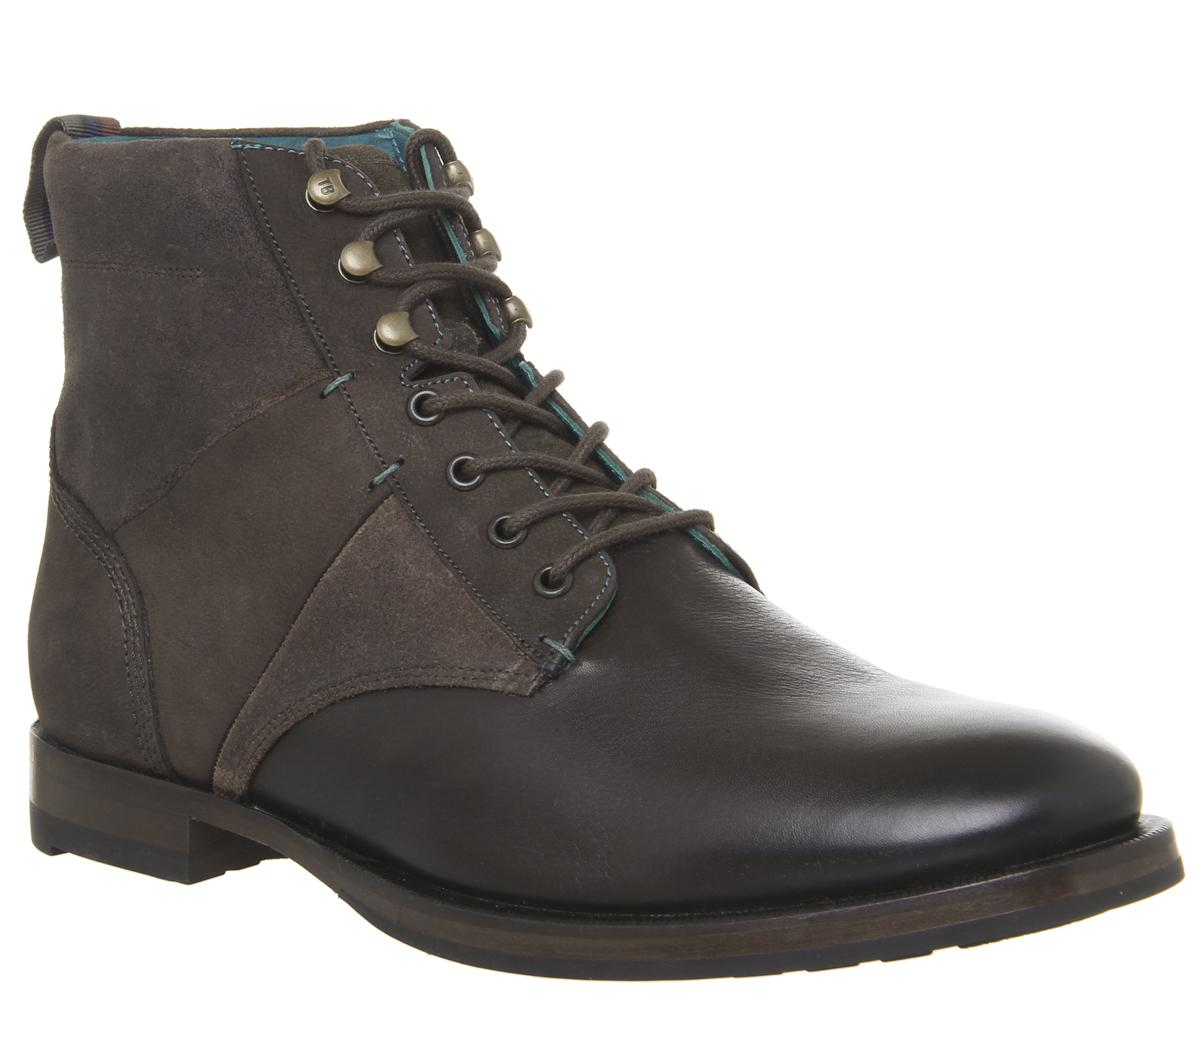 Reubal Lace Up Boots